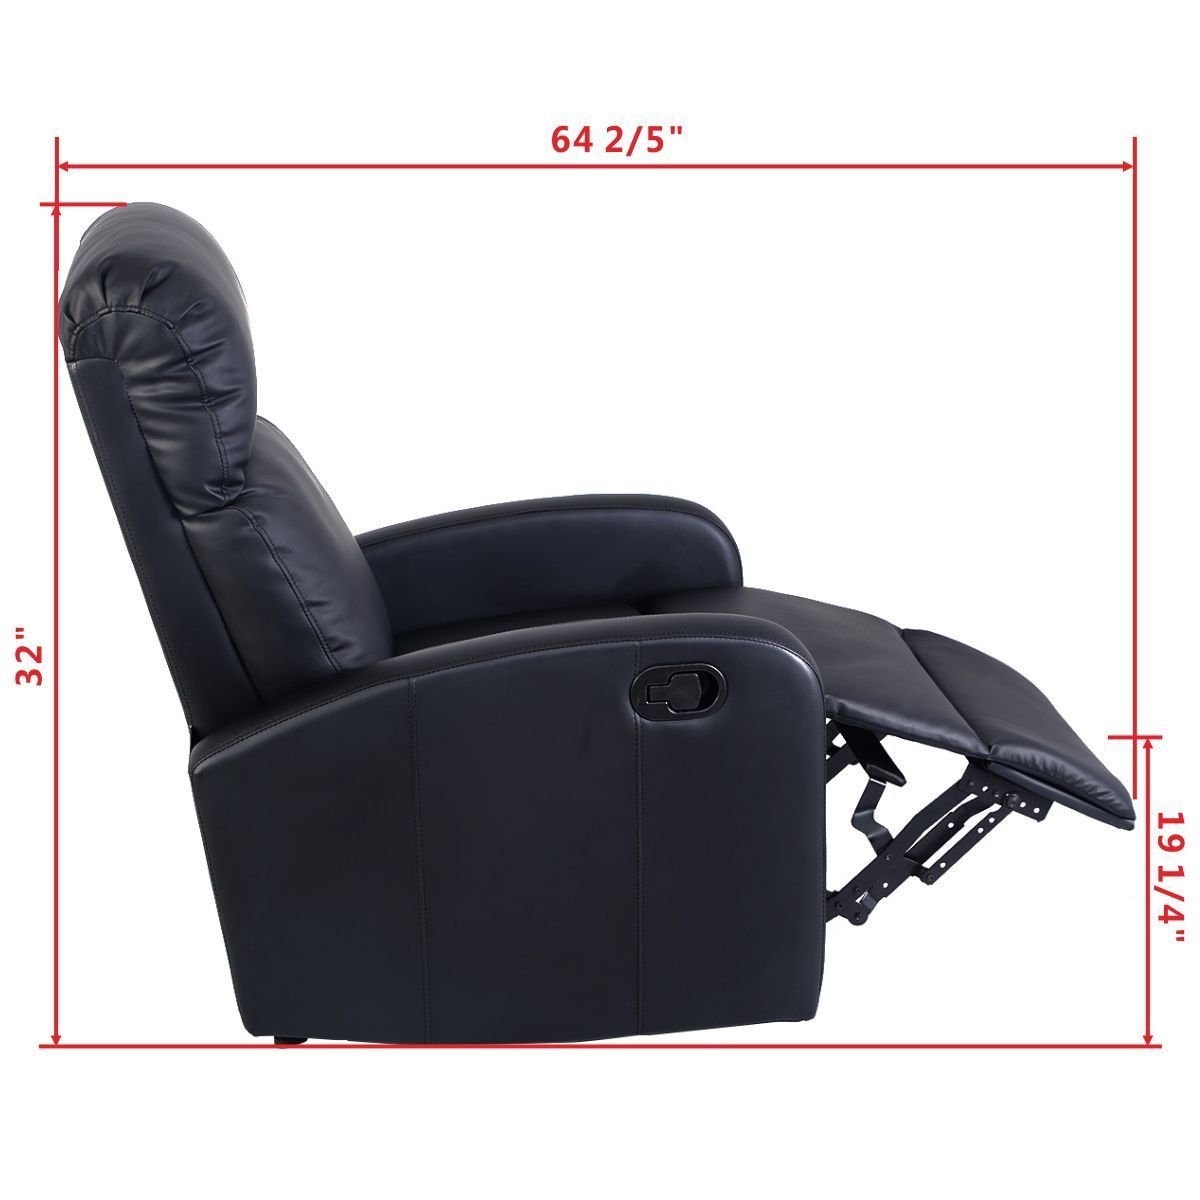 Superior Amazon.com: Giantex Manual Recliner Chair Black Lounger Leather Sofa Seat  Home Theater: Kitchen U0026 Dining